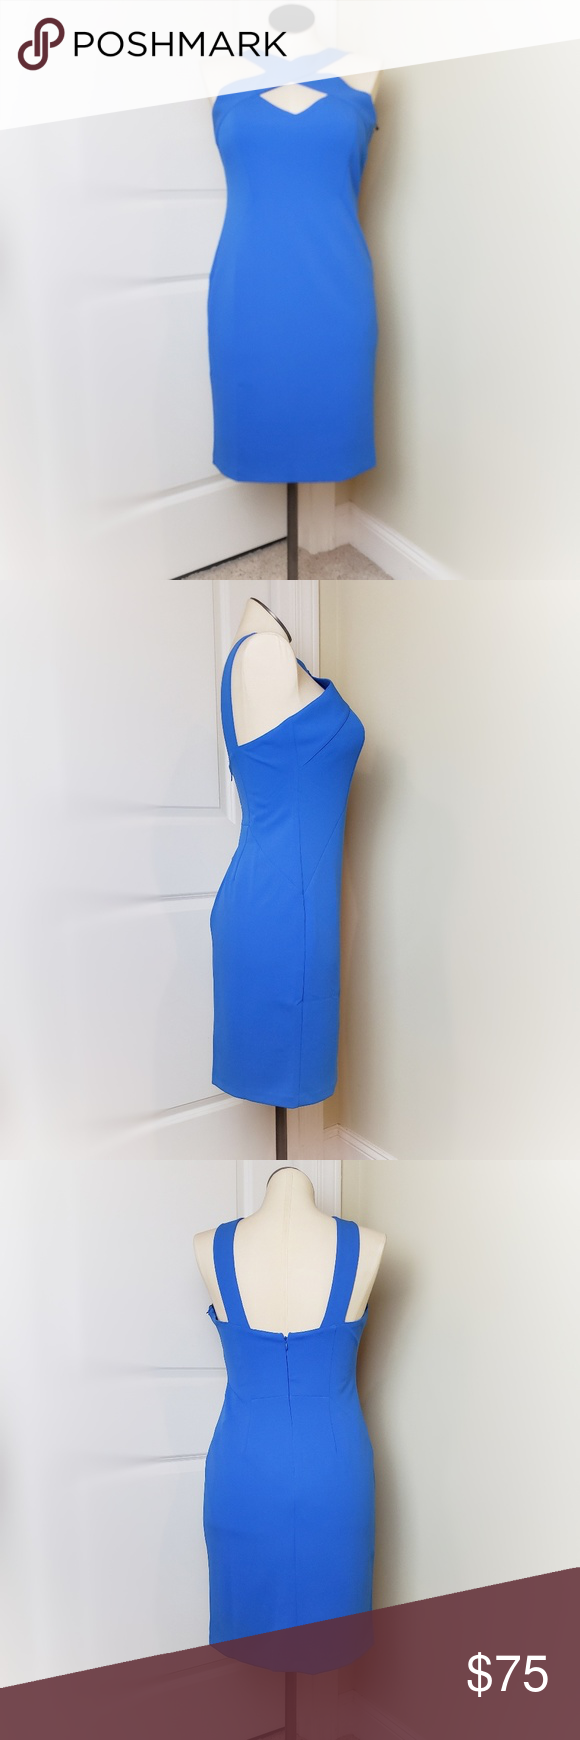 Nwt Vince Camuto Blue Dress 10 Blue Fitted Dress By Vince Camuto Filly Lined Zipper And Hook Eye Closure Blue Dresses Flare Mini Dress Velvet Cocktail Dress [ 1740 x 580 Pixel ]